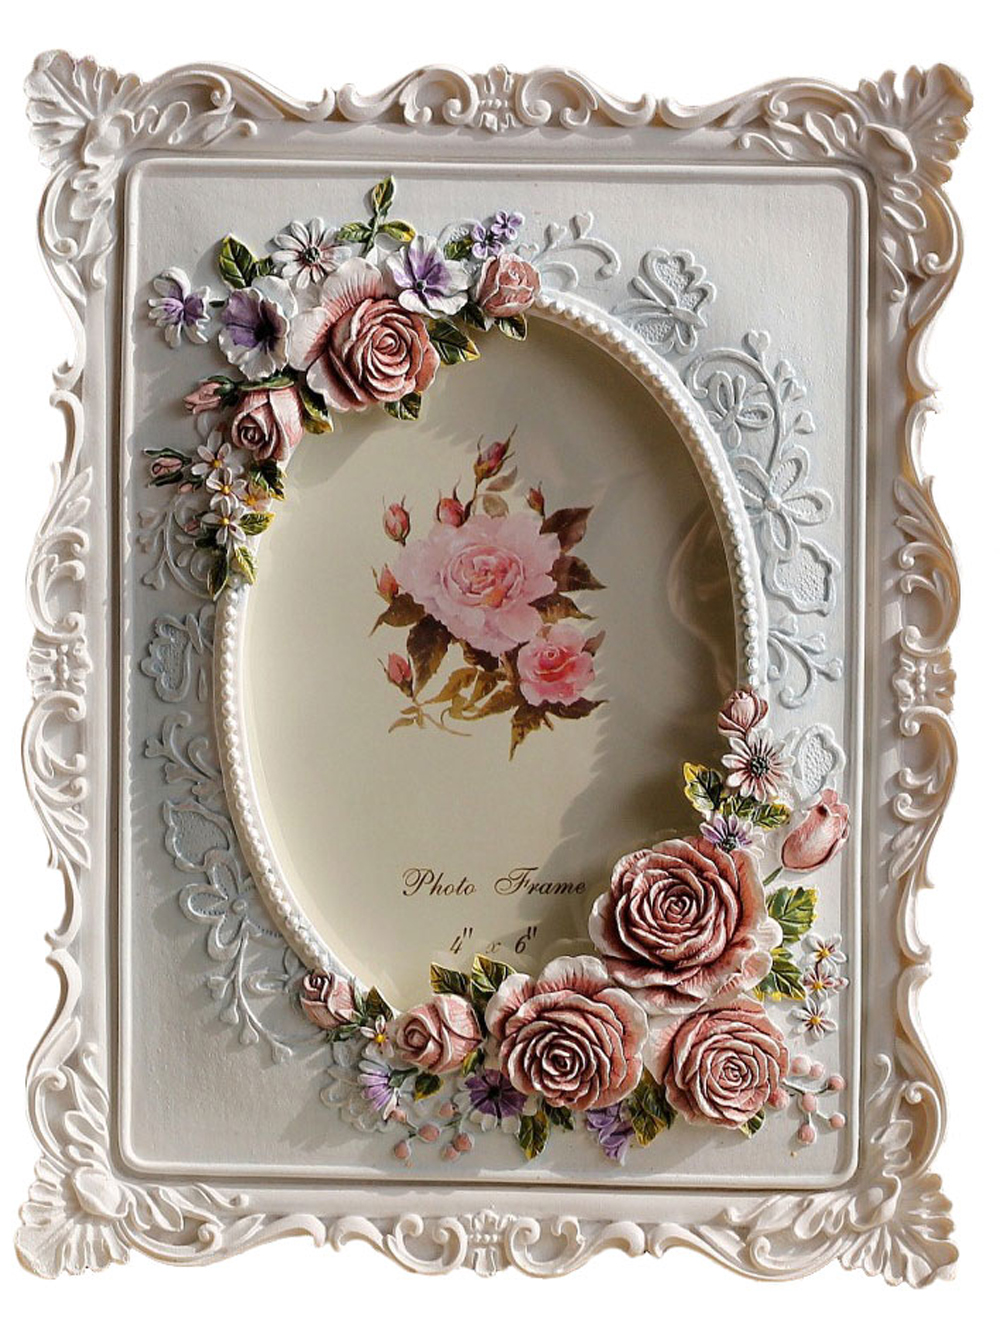 Wedding Gift Picture Frames Suggestions : Ideas Wedding Gift Frames wedding anniversary picture frames promotion ...